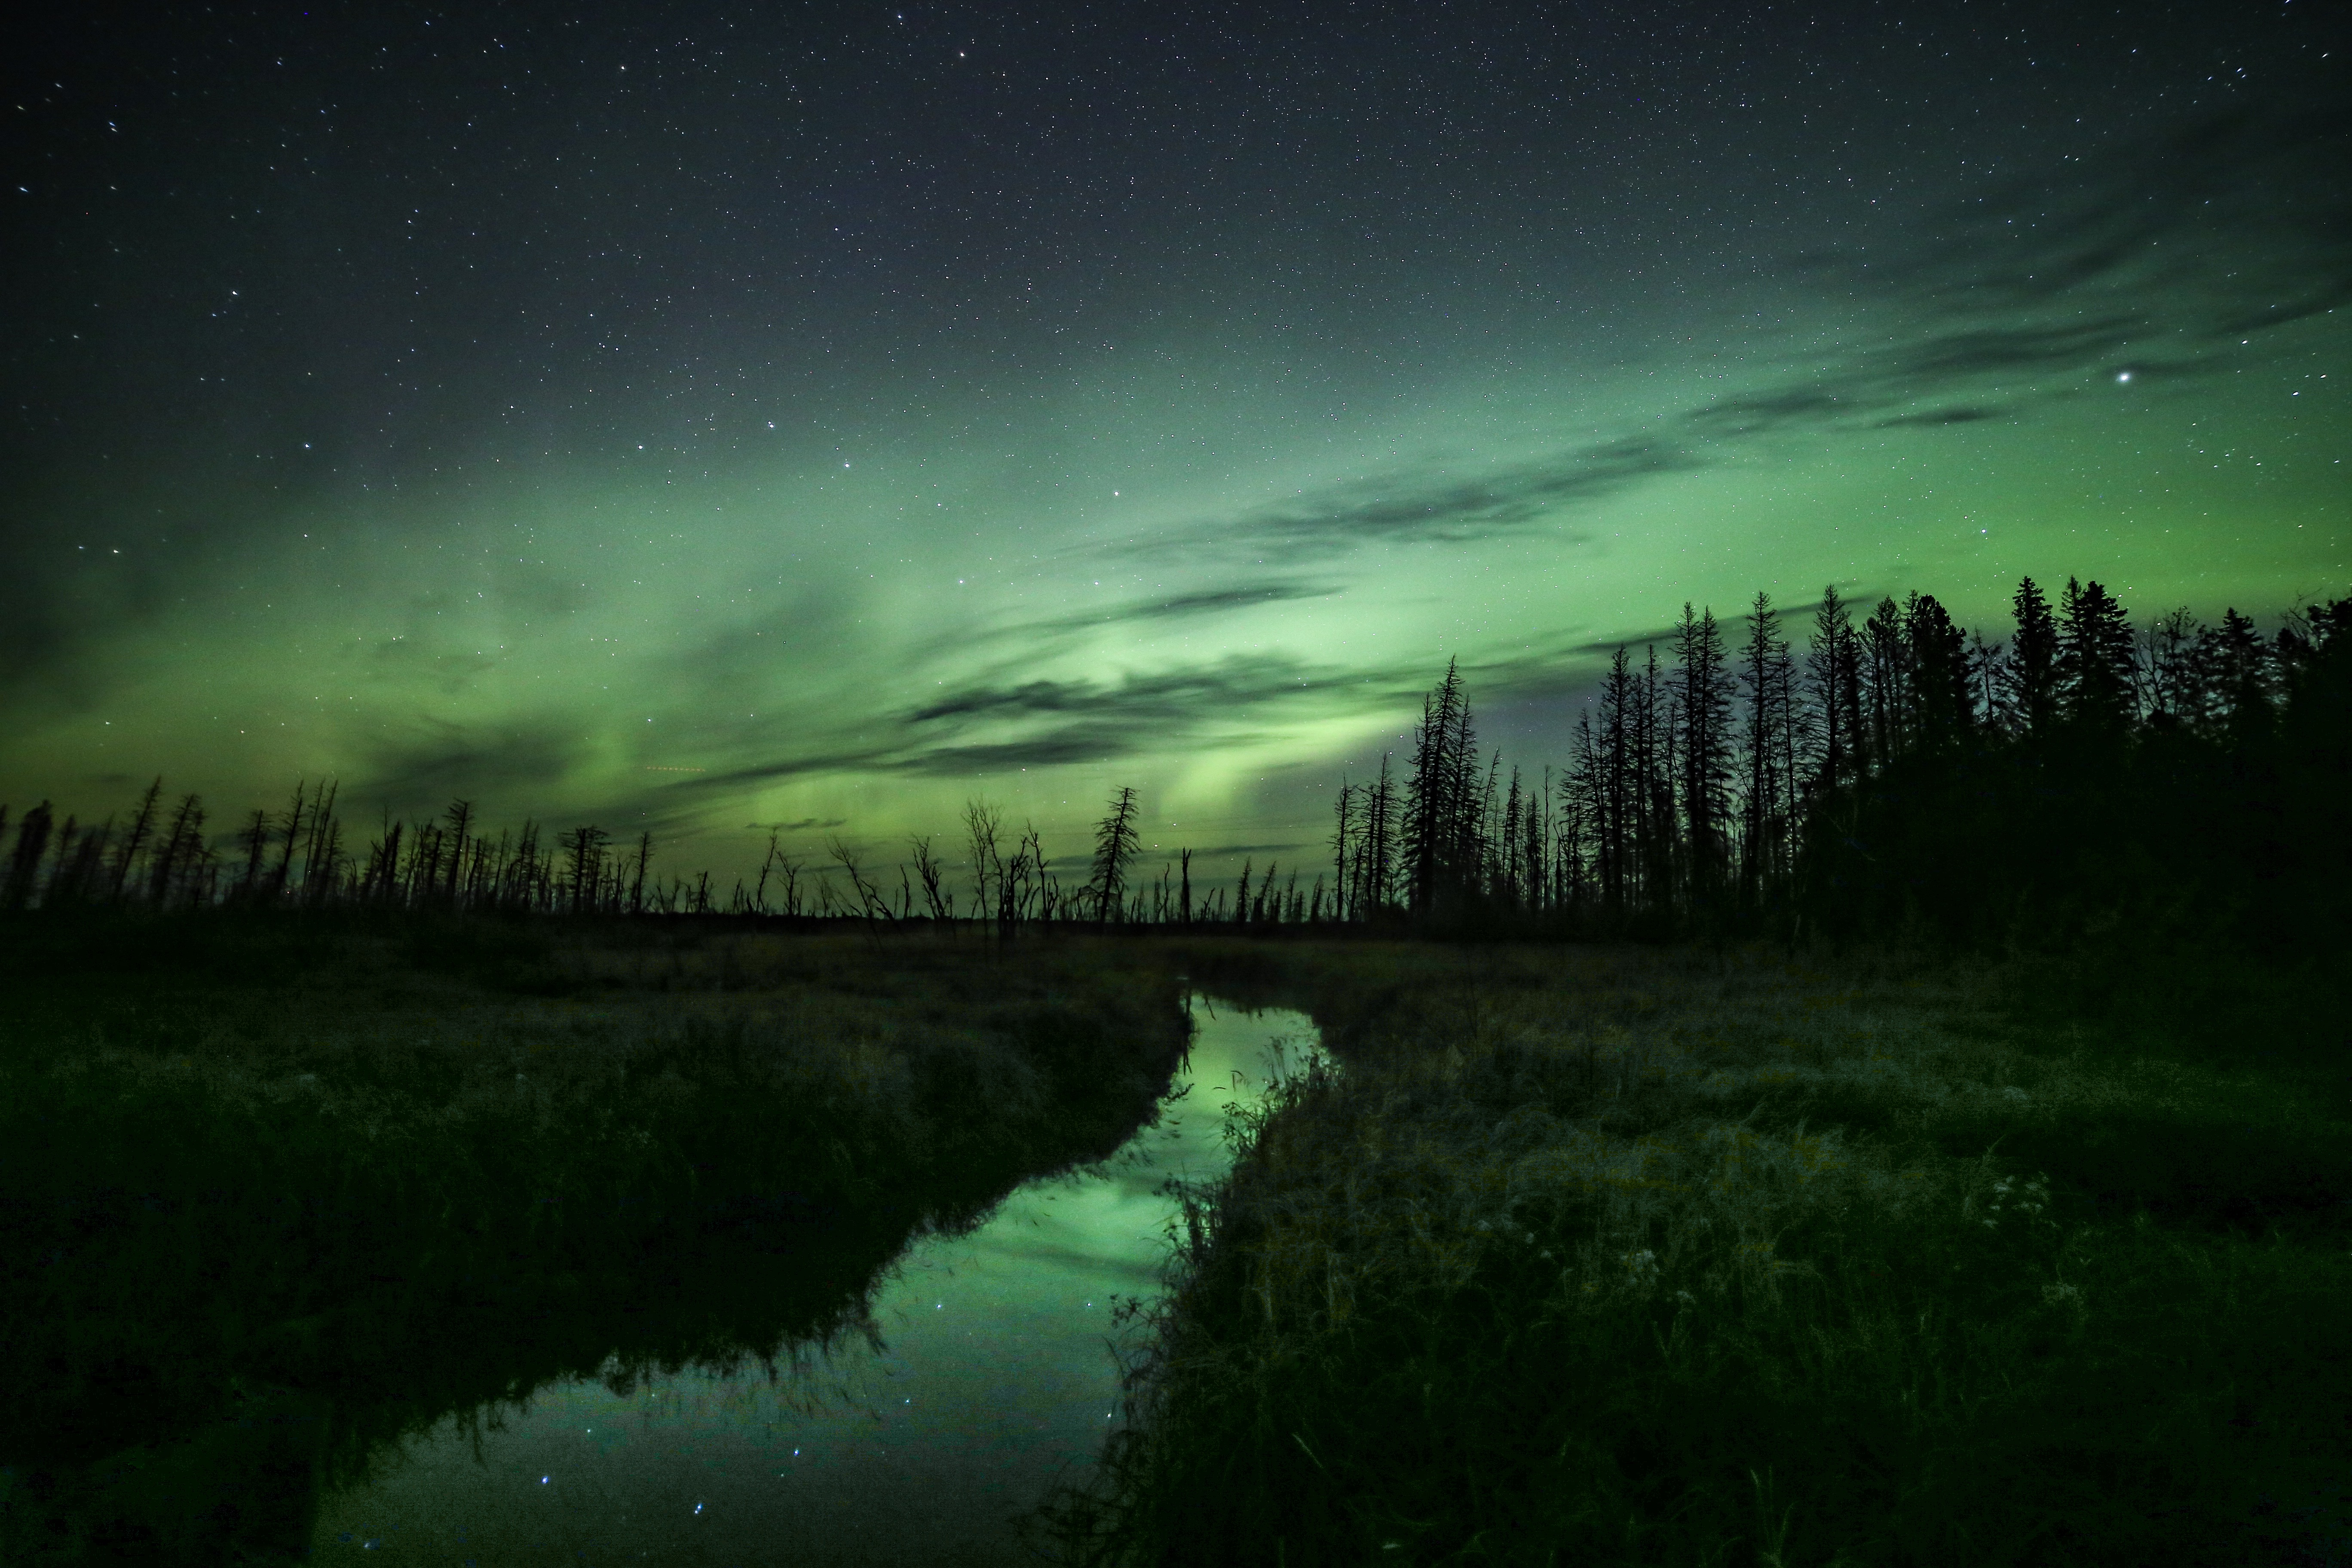 Aurora Borealis in the Boreal Forest in Saskatchewan, Canada